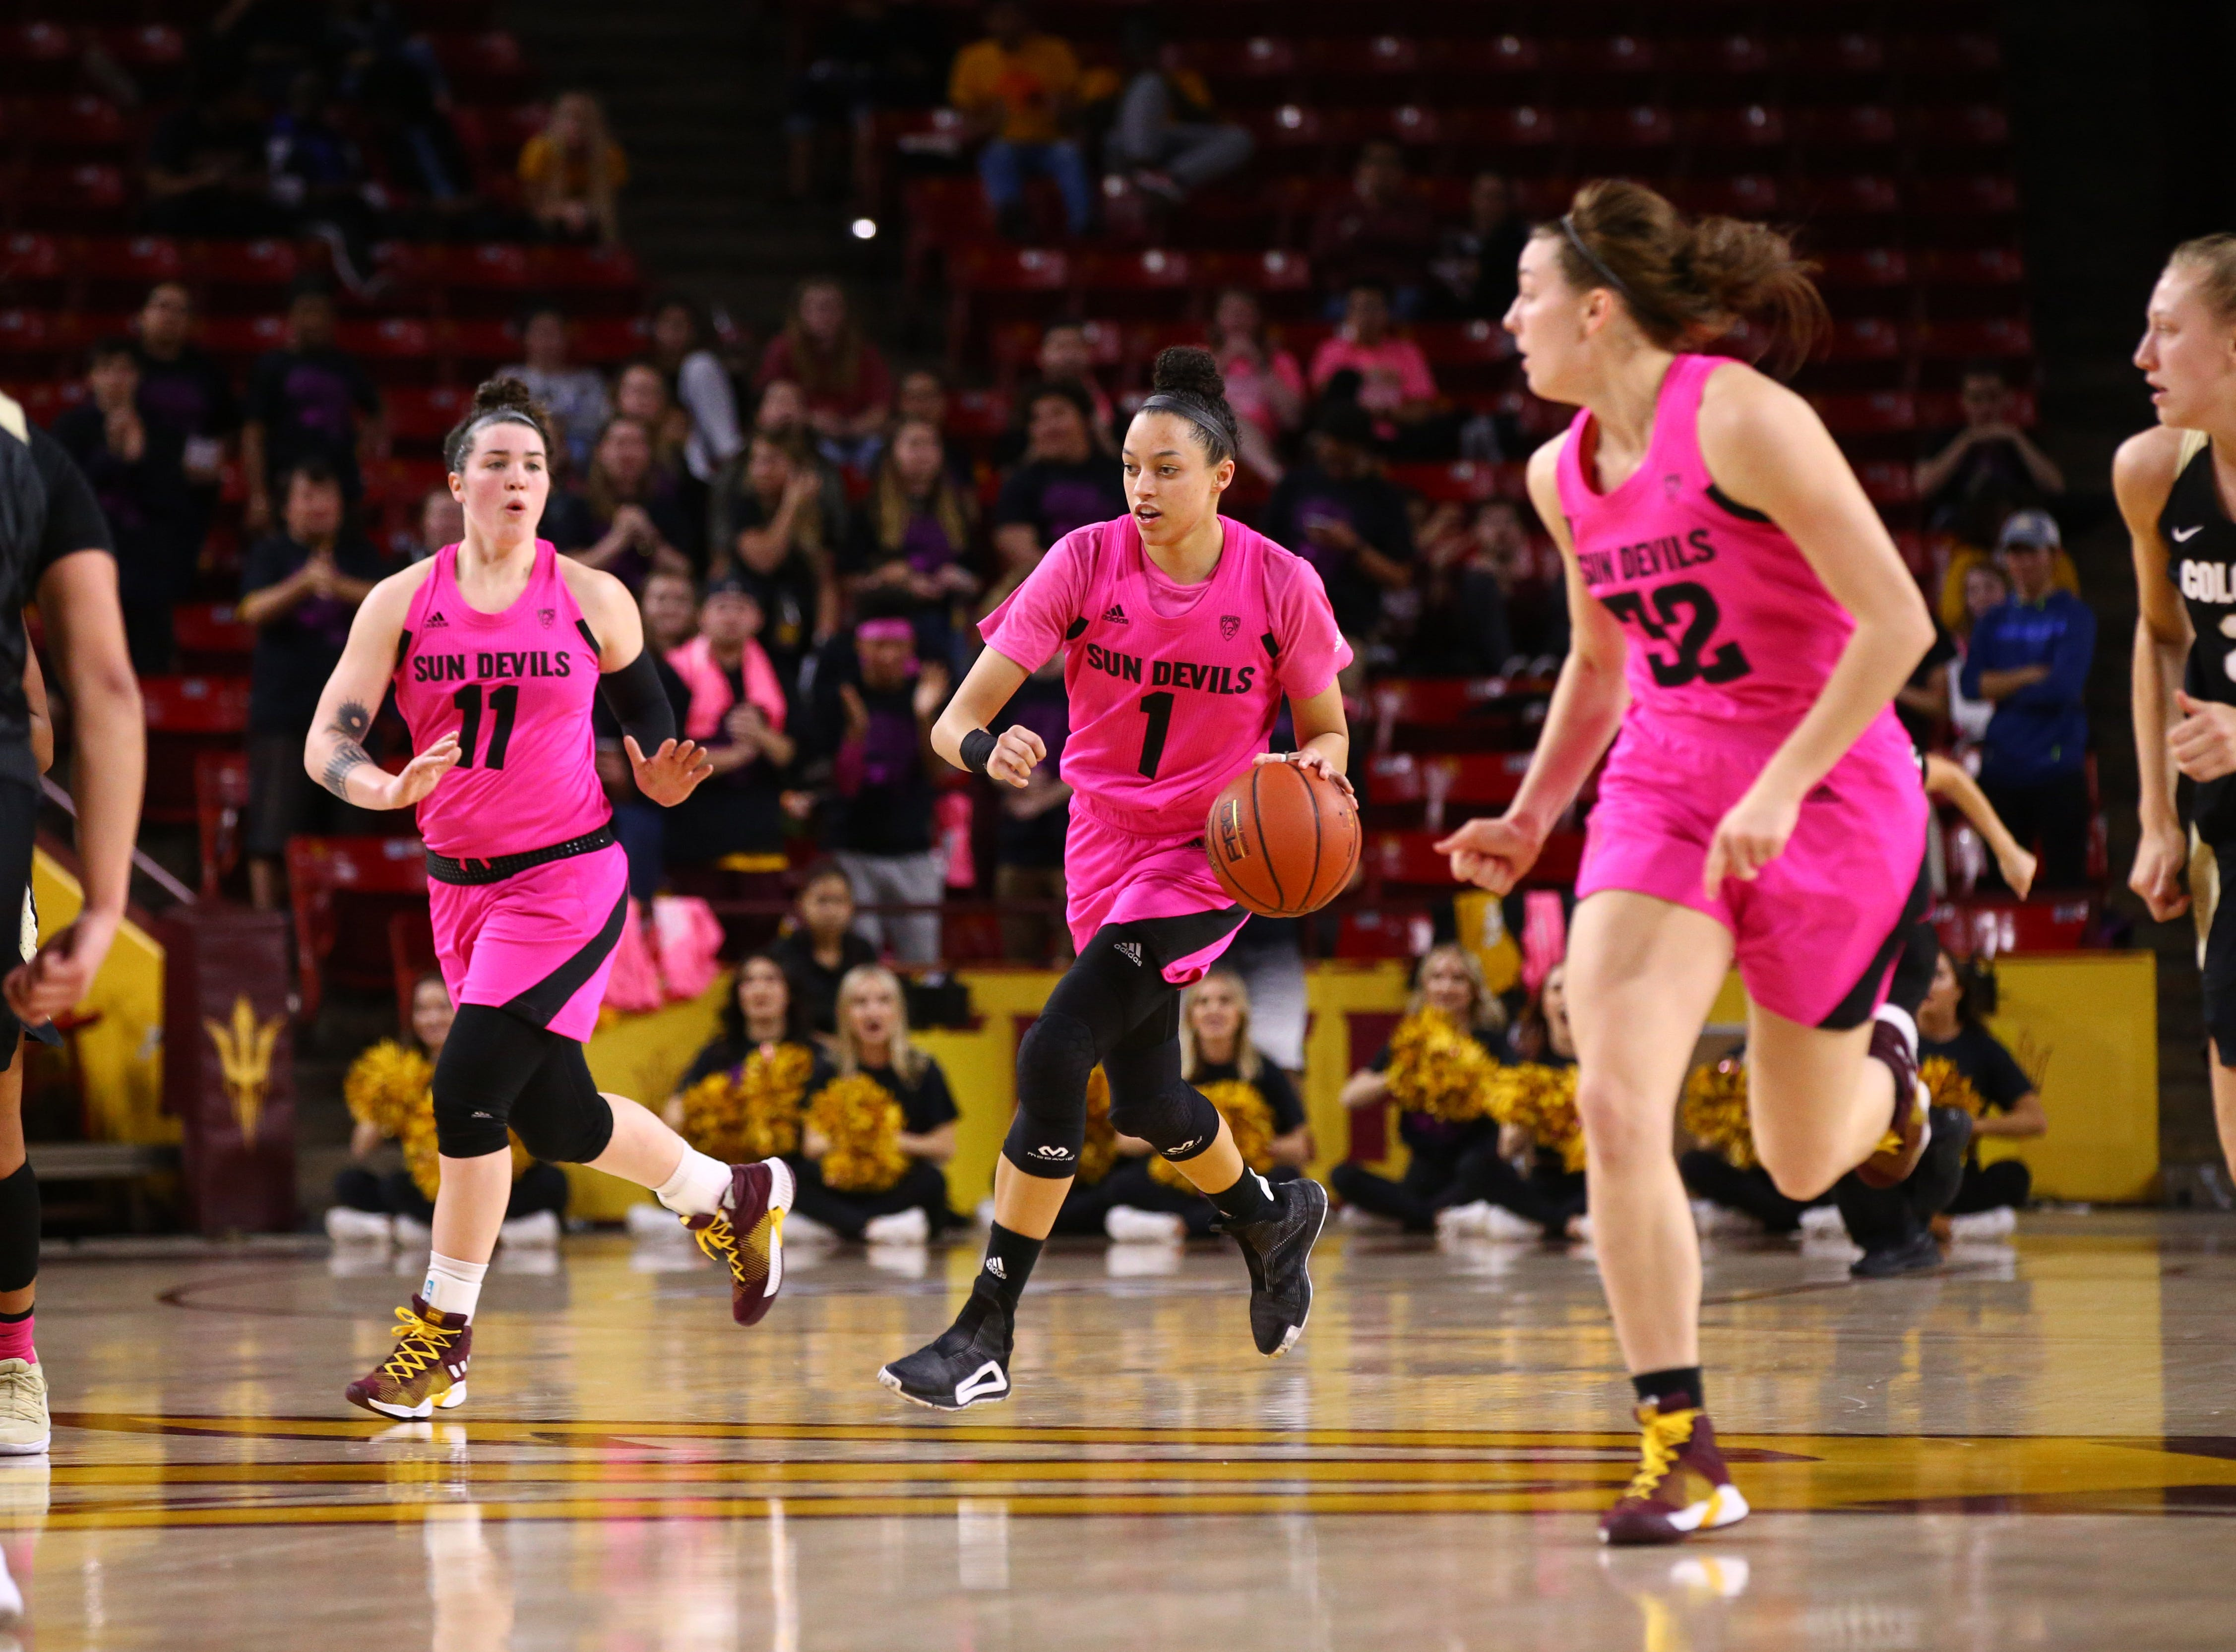 Arizona State Sun Devils guard Reili Richardson (1) brings-up the ball against the Colorado Buffaloes in the second half on Feb. 15 at Wells Fargo Arena in Tempe, Ariz.